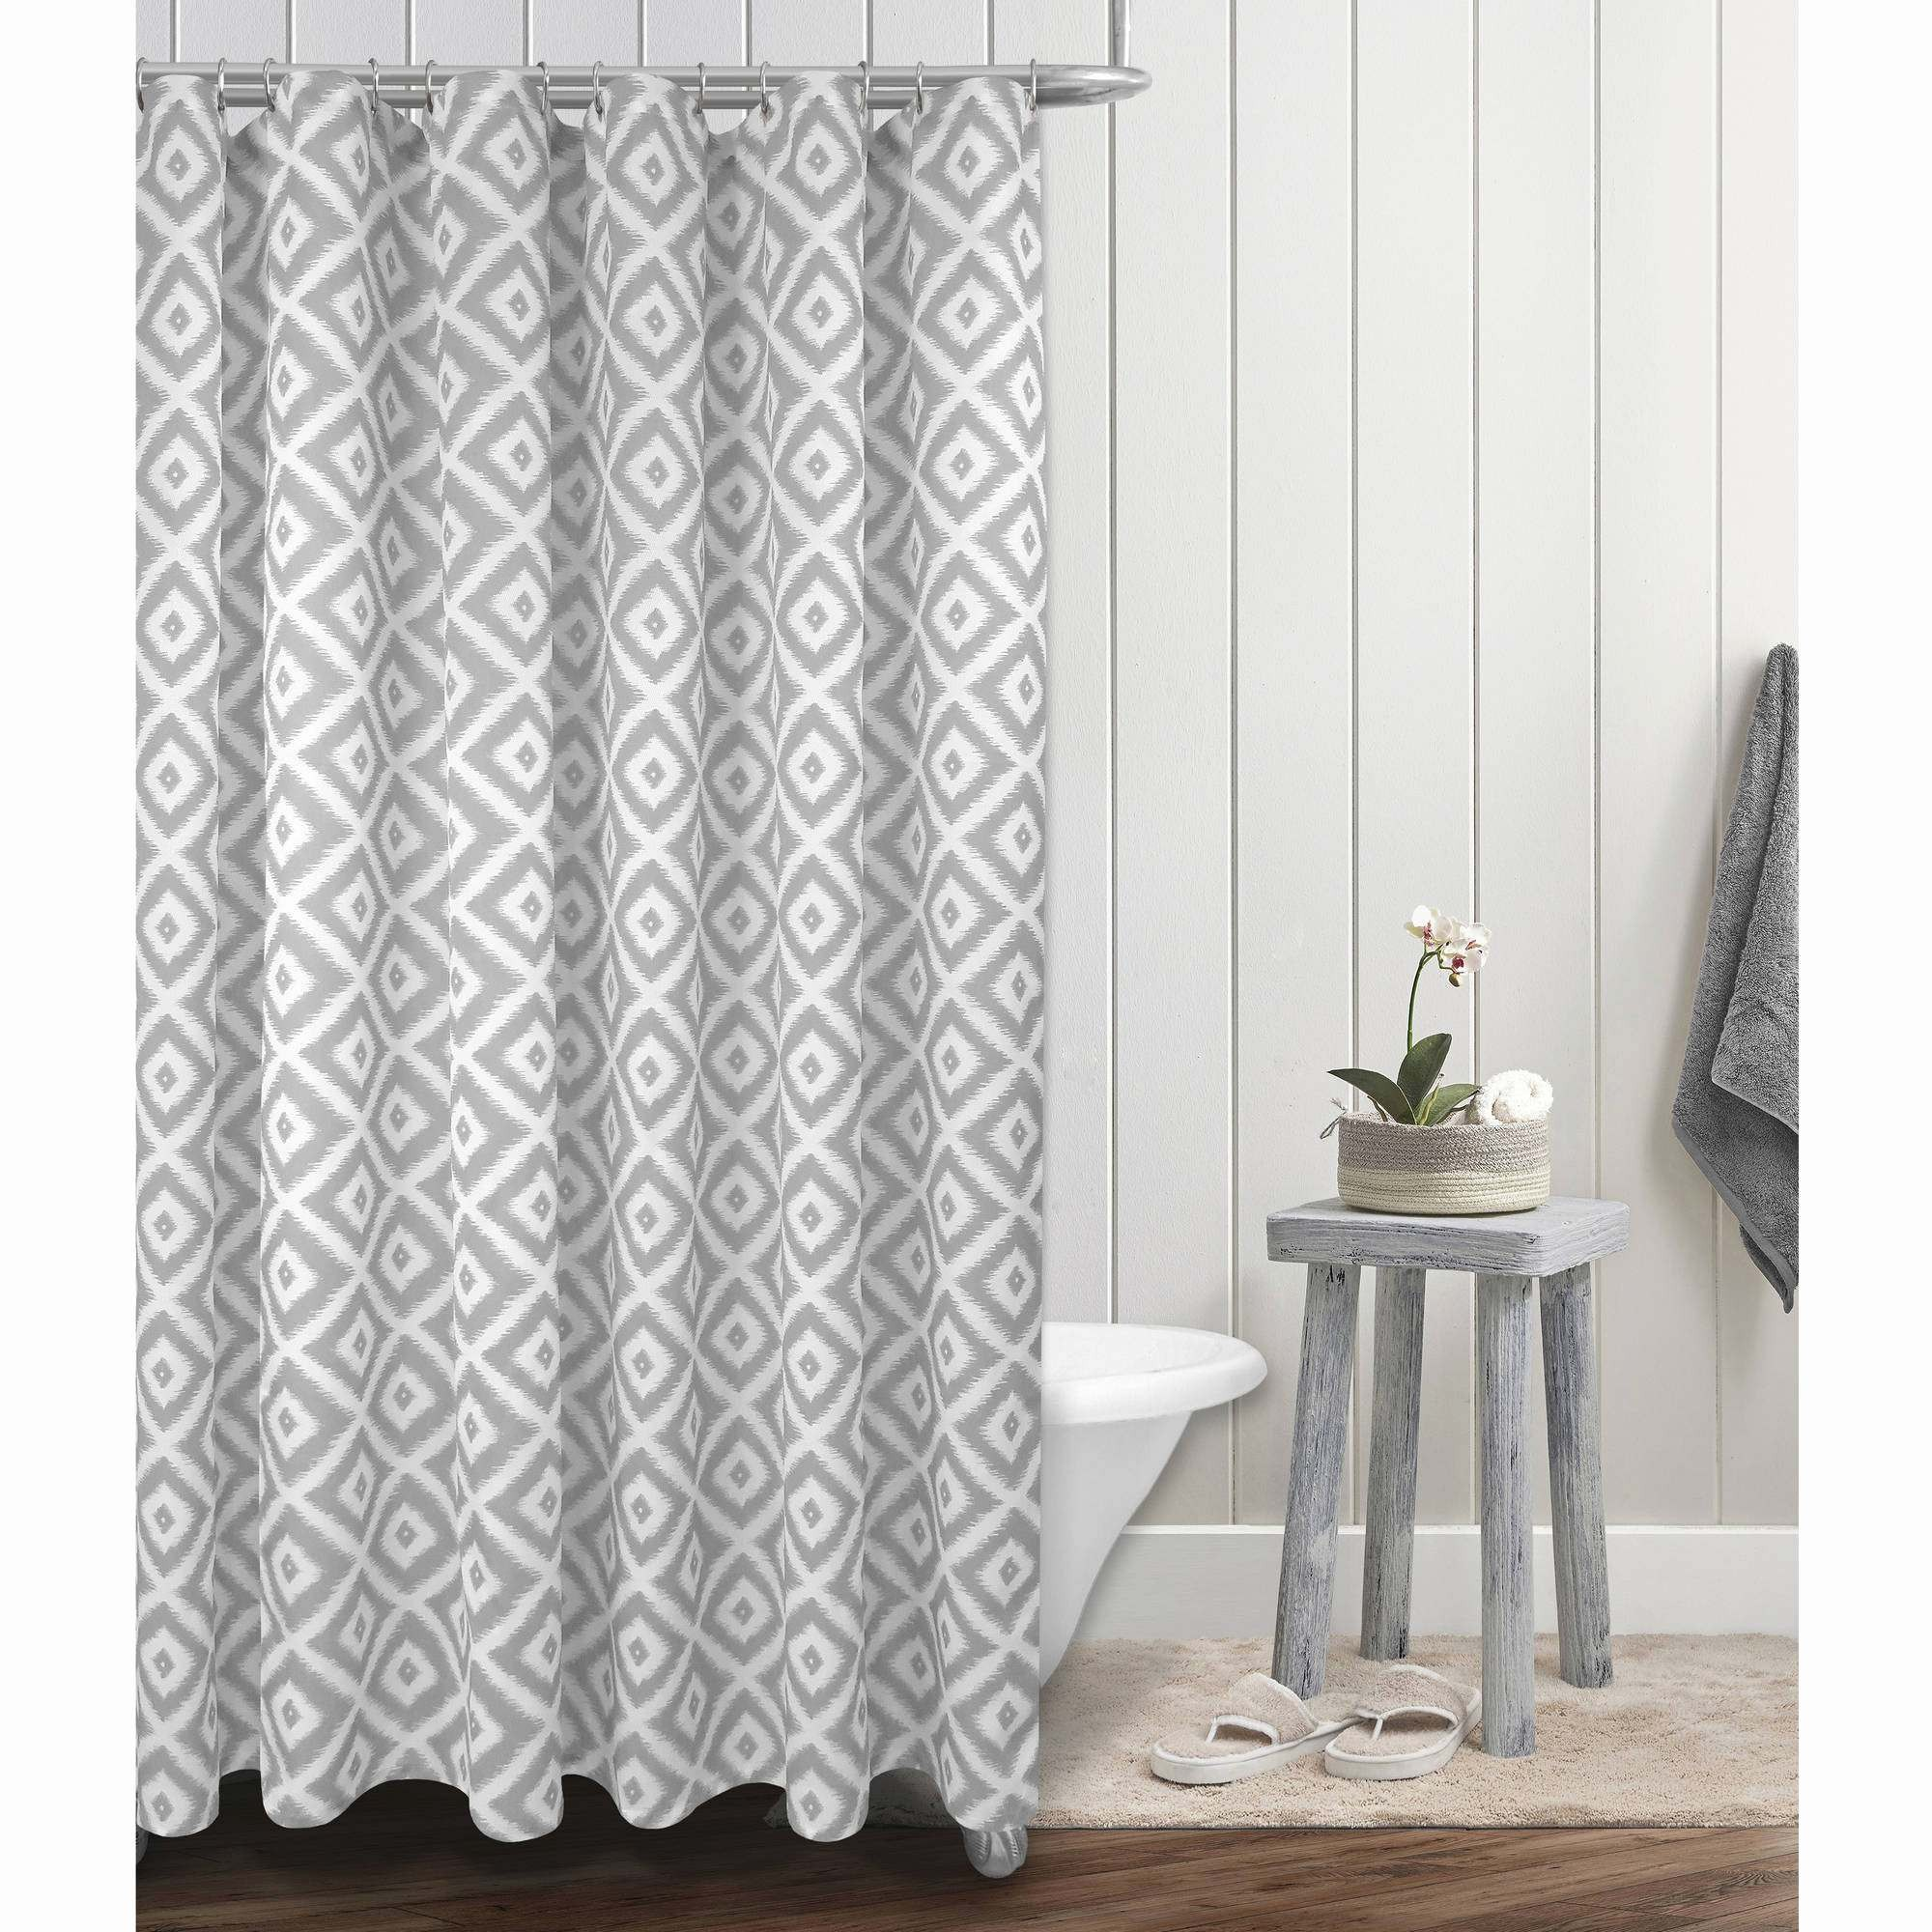 Jcpenney Shower Curtains Sets